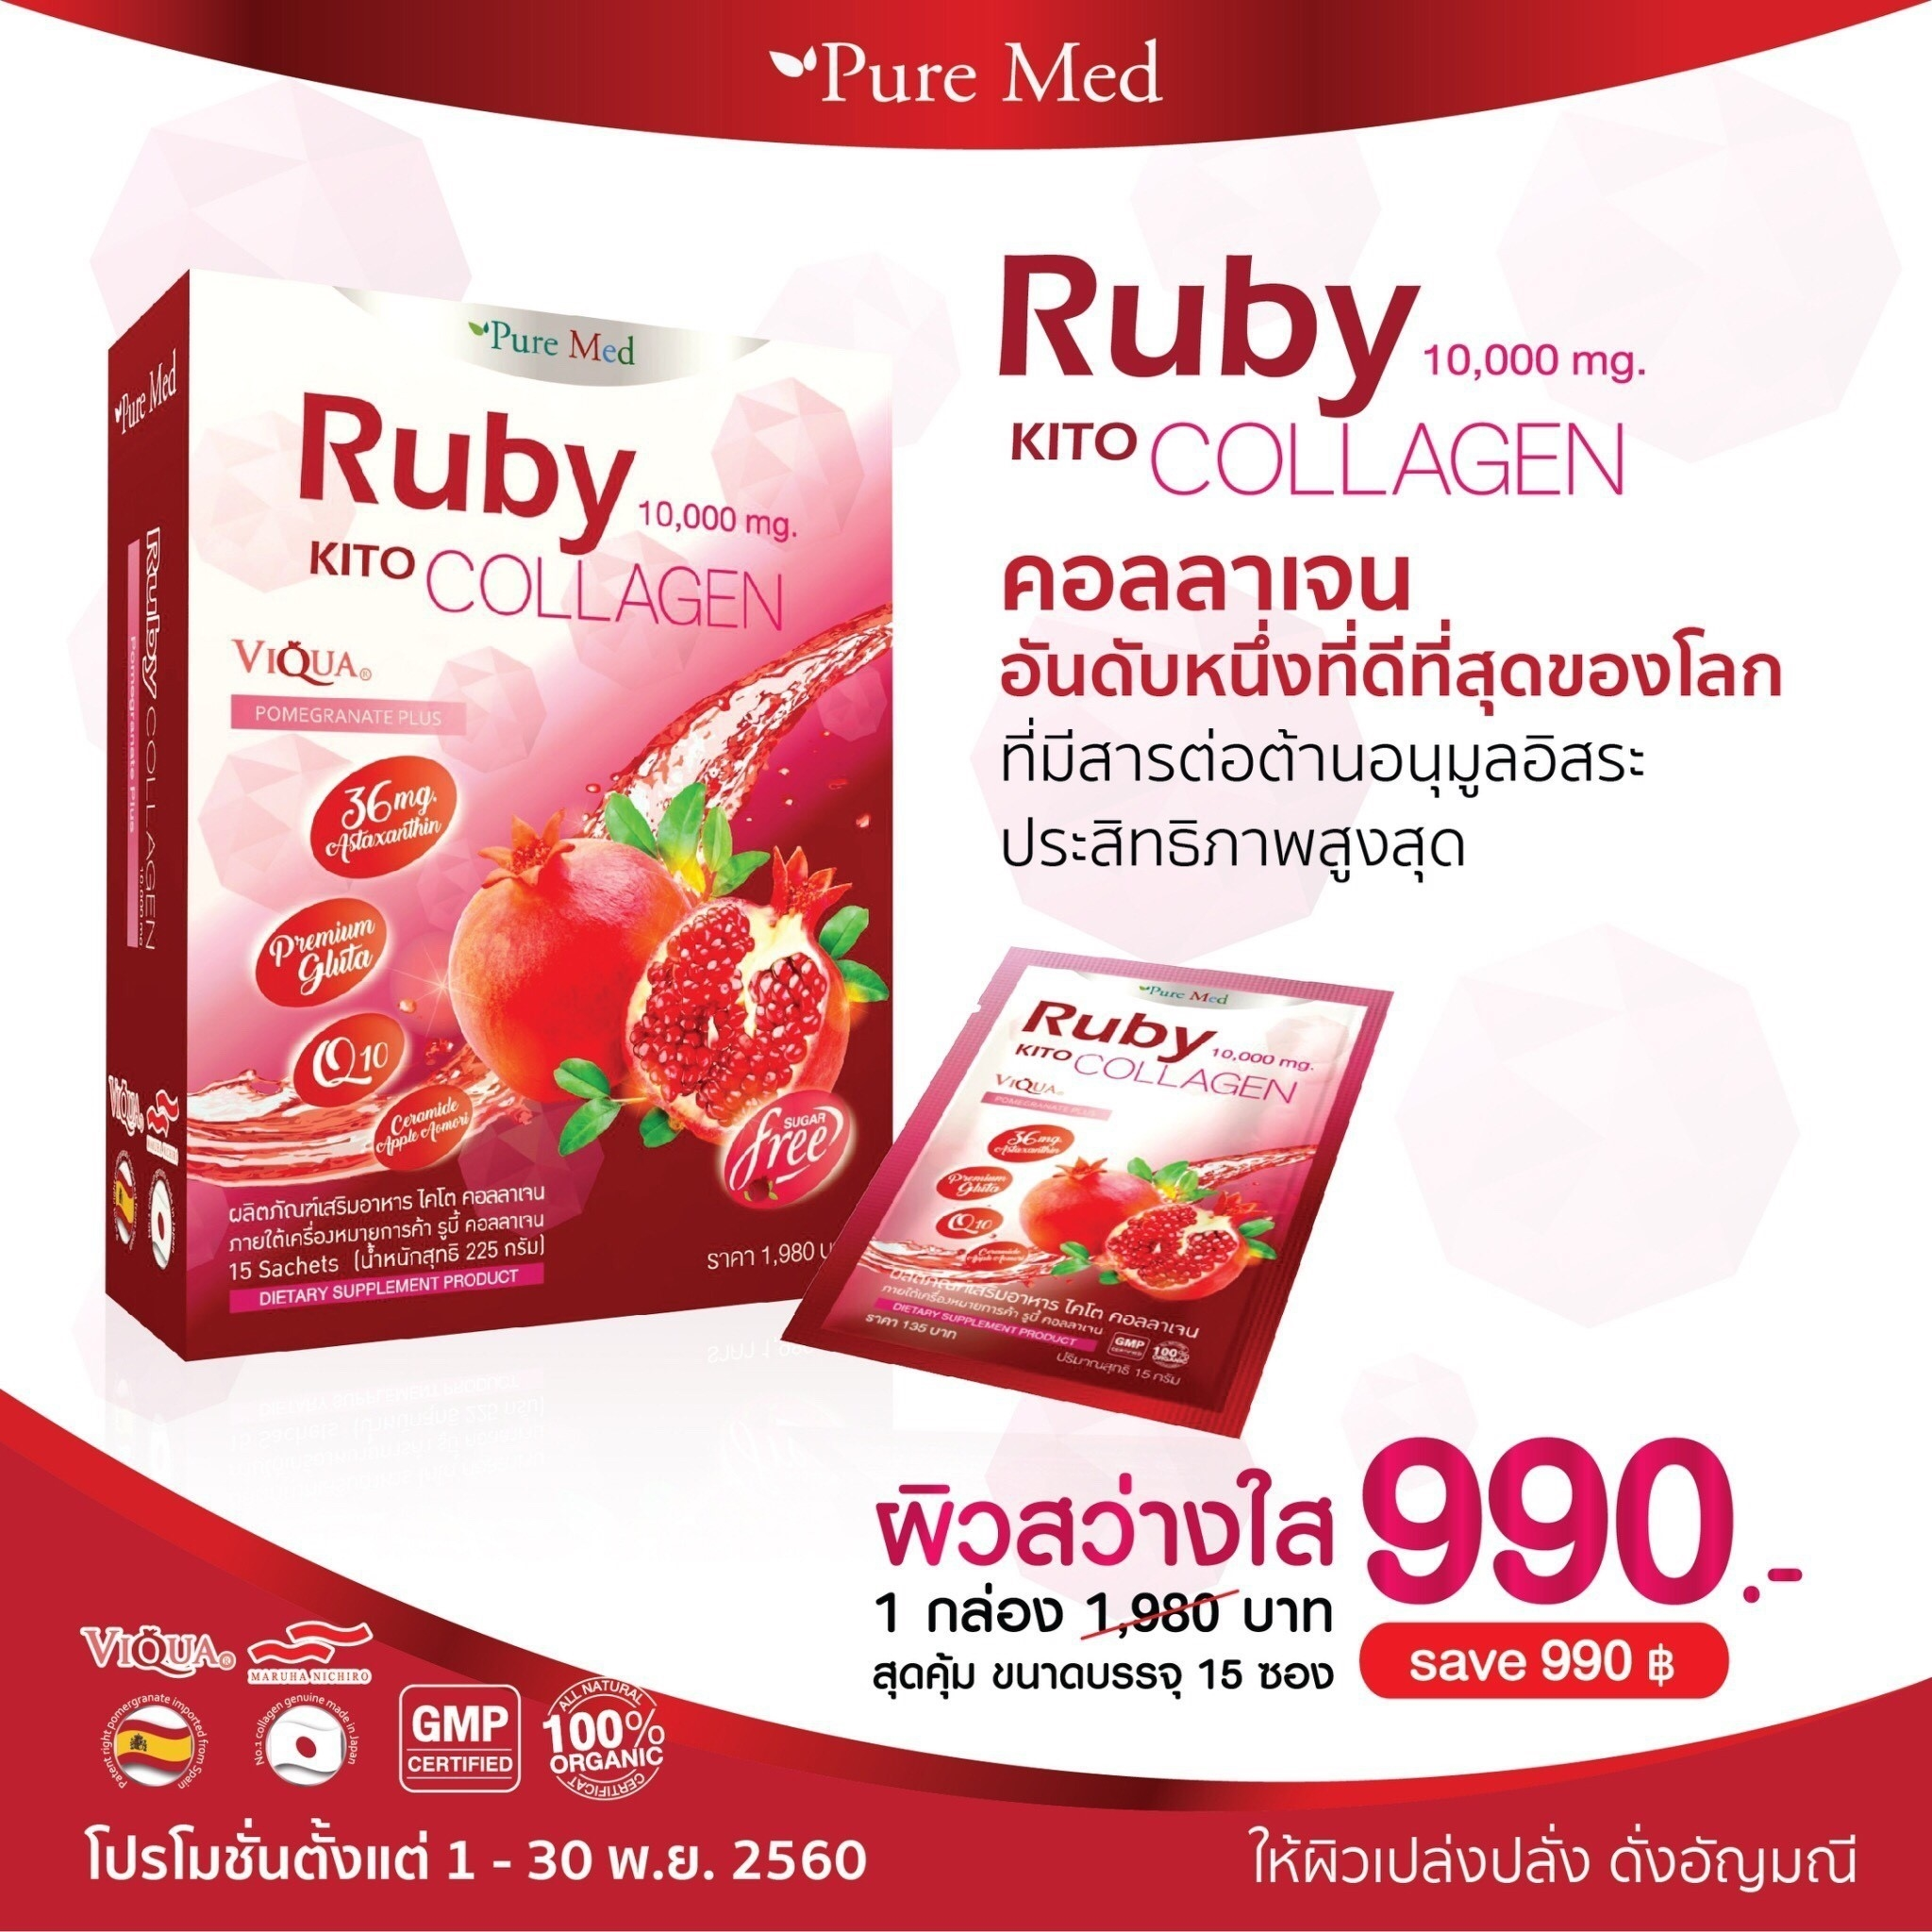 ruby kito collagen 10,000 mg. 1 กล่อง